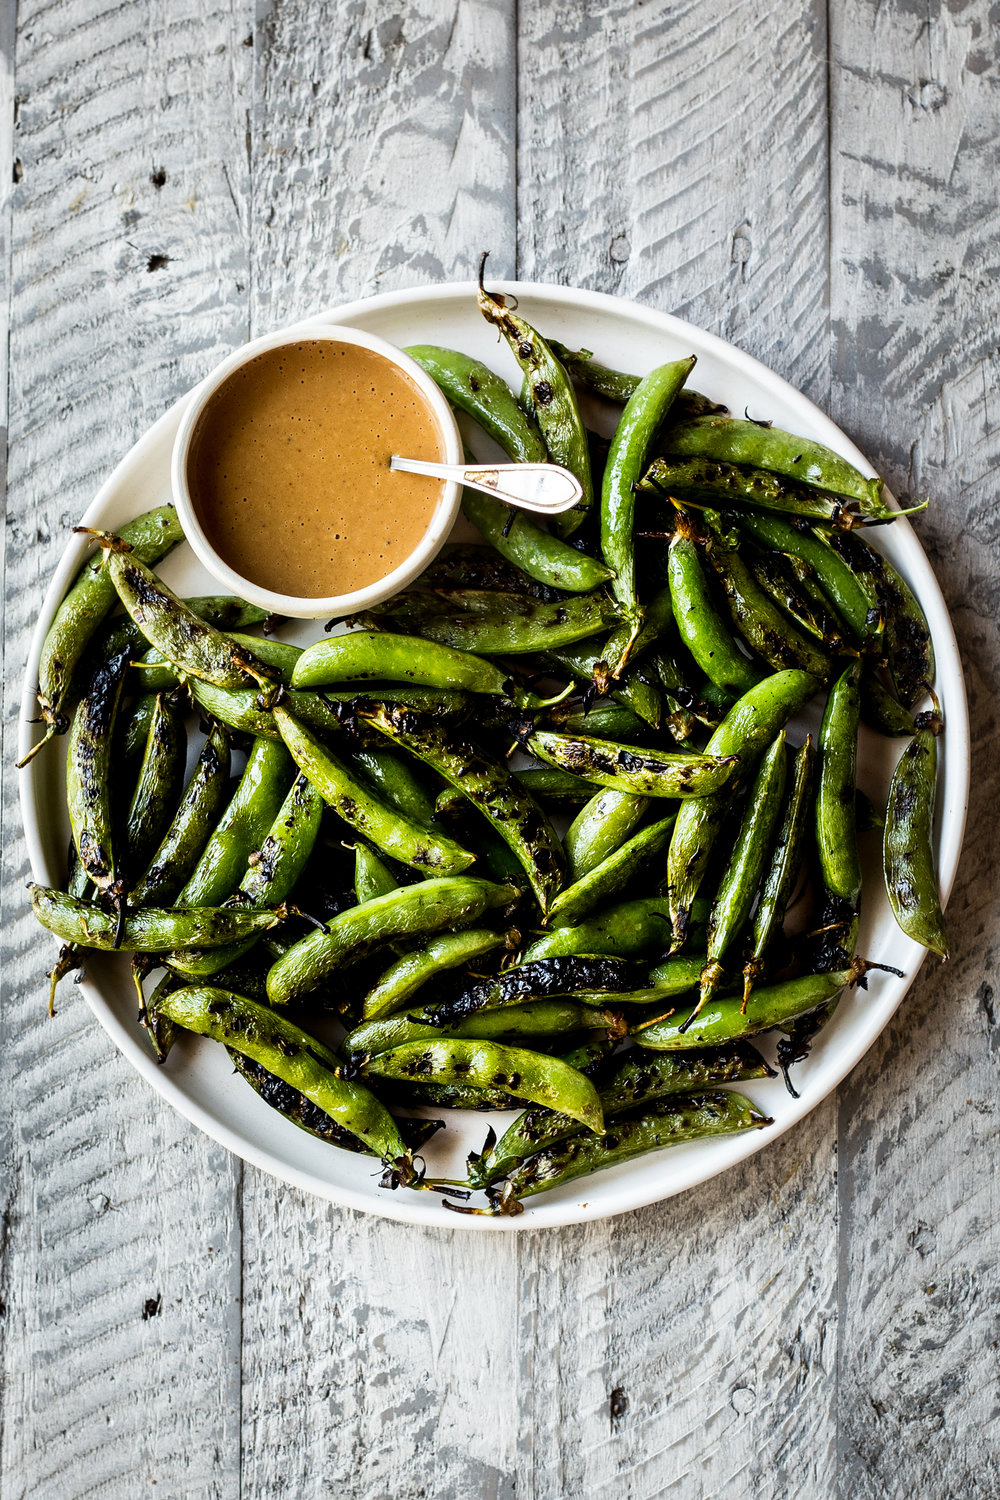 Grilled Sugar Snap Peas with Peanut Dipping Sauce